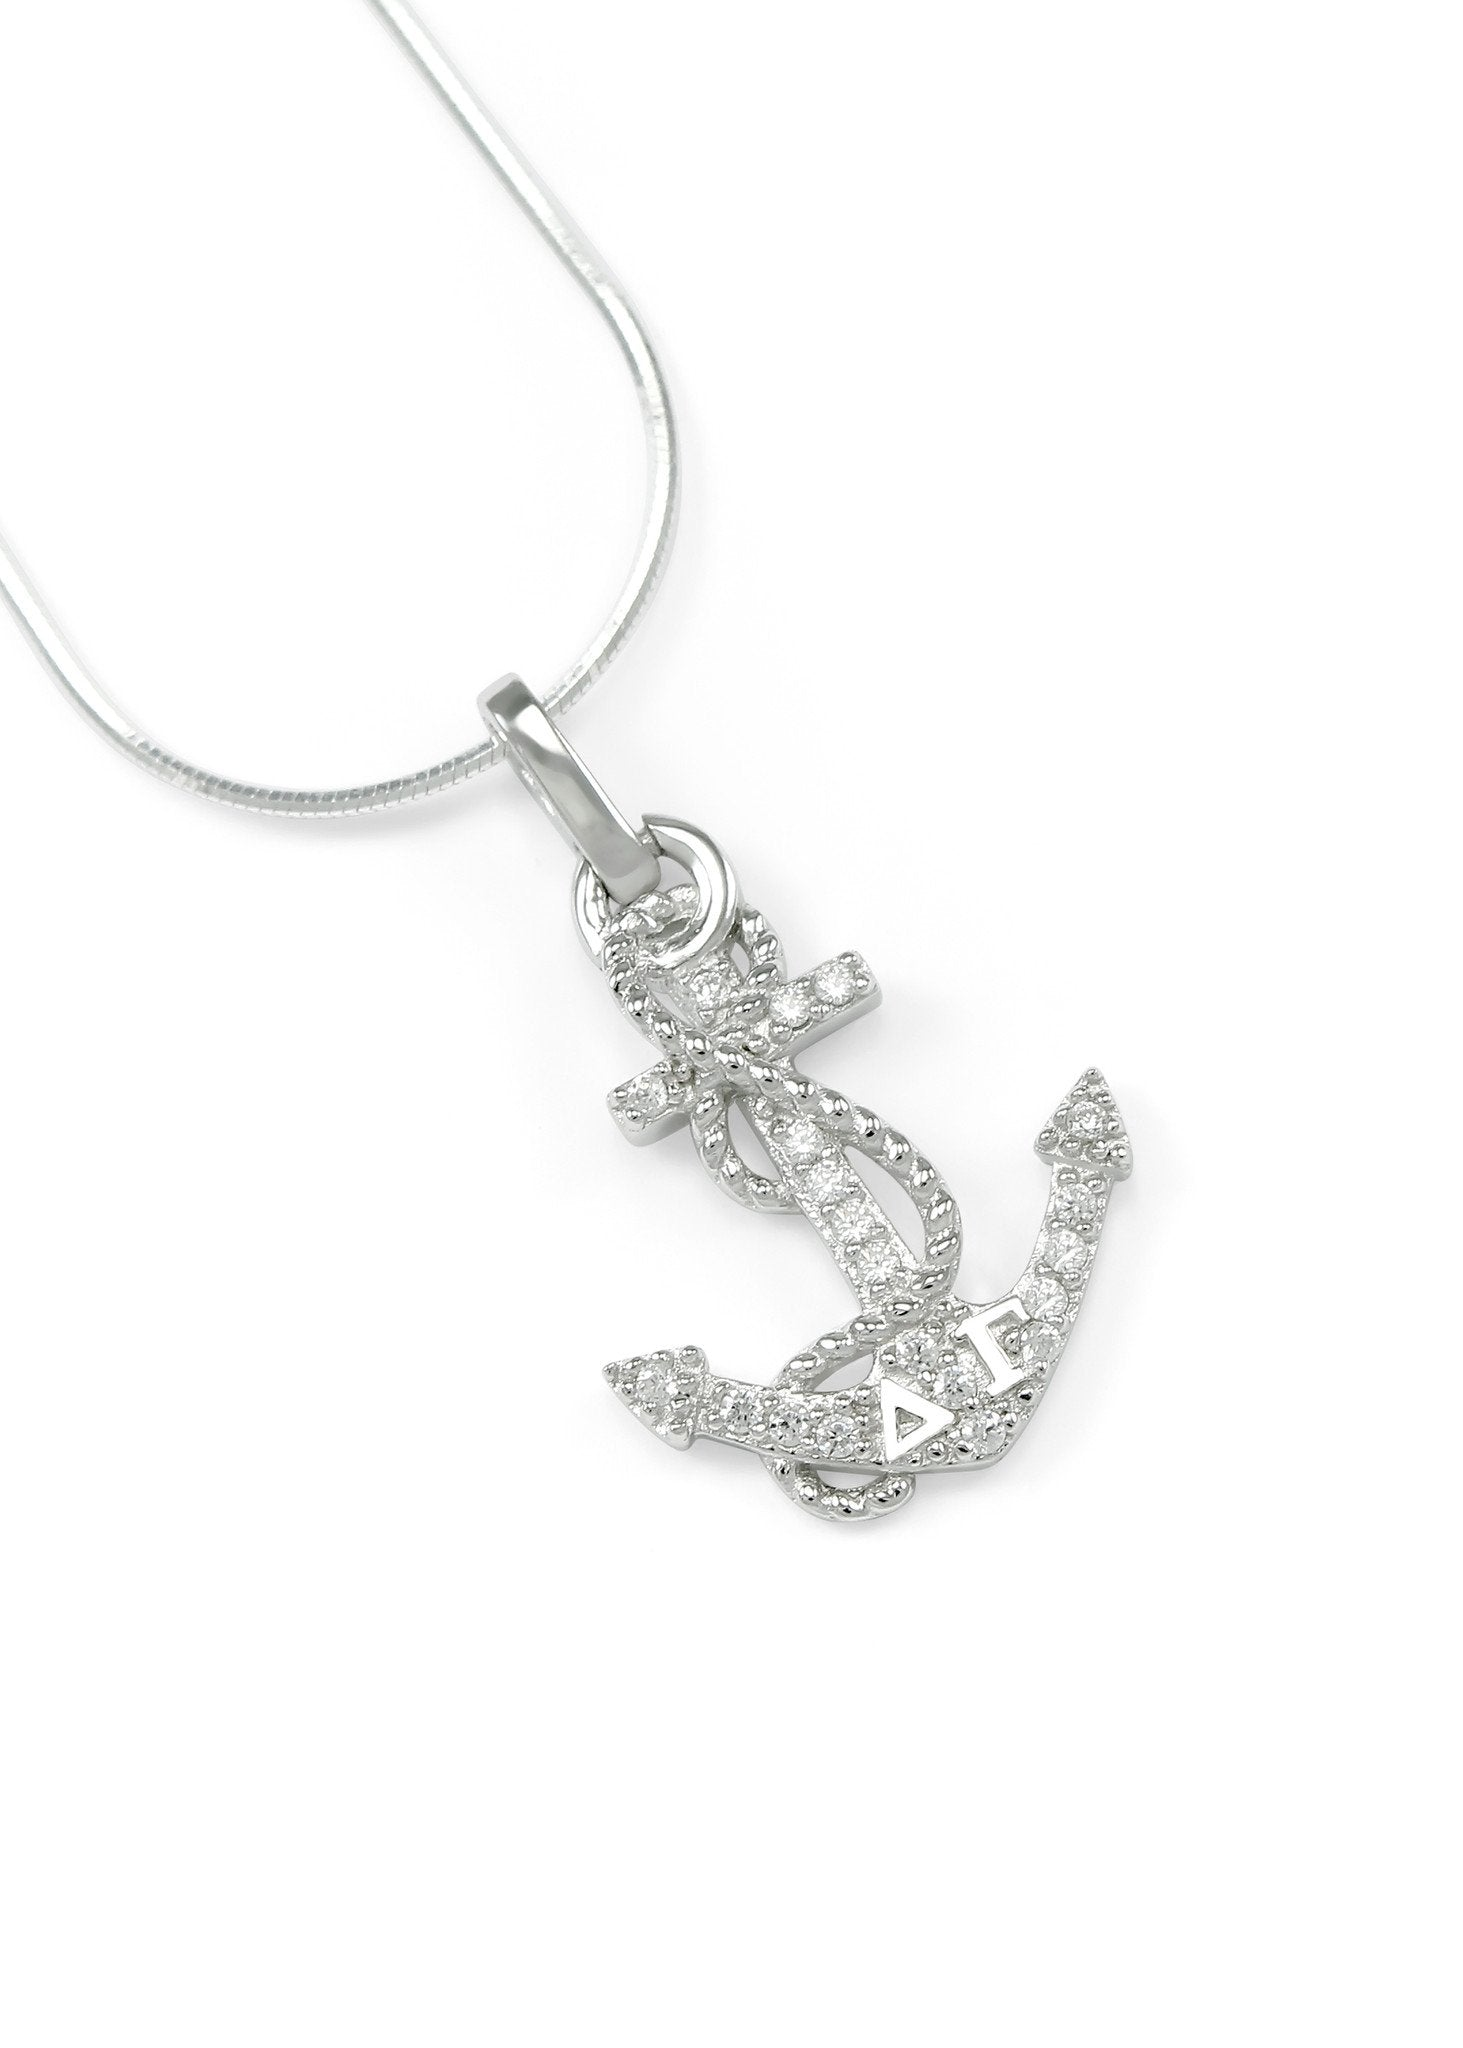 Delta gamma necklace sterling silver anchor necklace the delta gamma sterling silver anchor pendant aloadofball Gallery